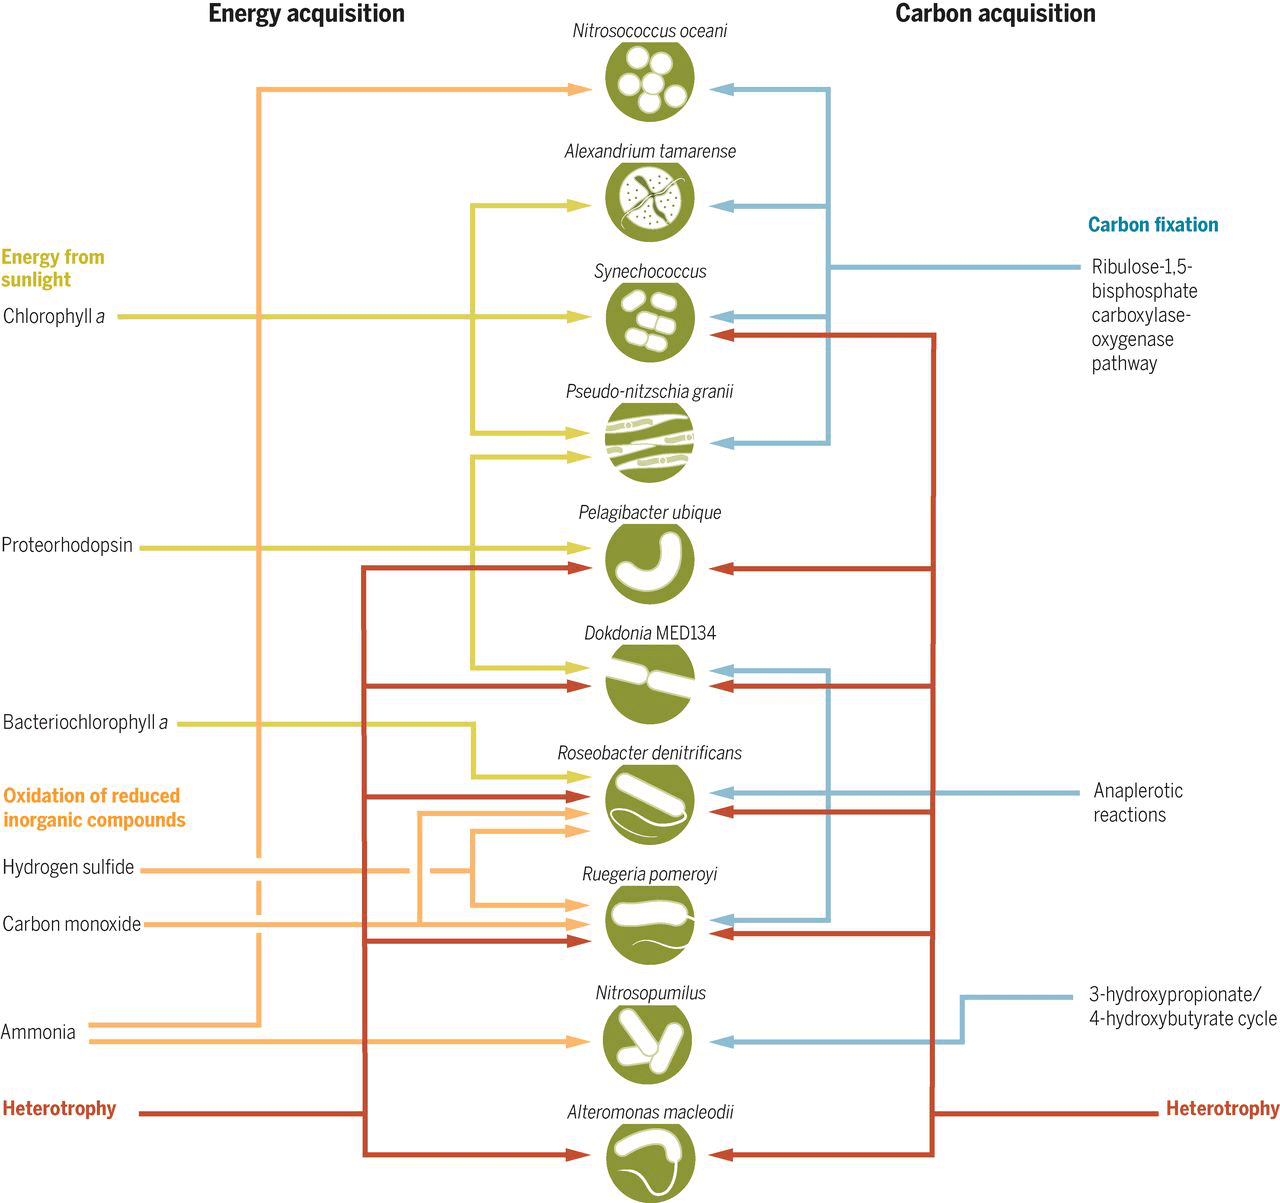 Trophic categories of the ocean microbiome.